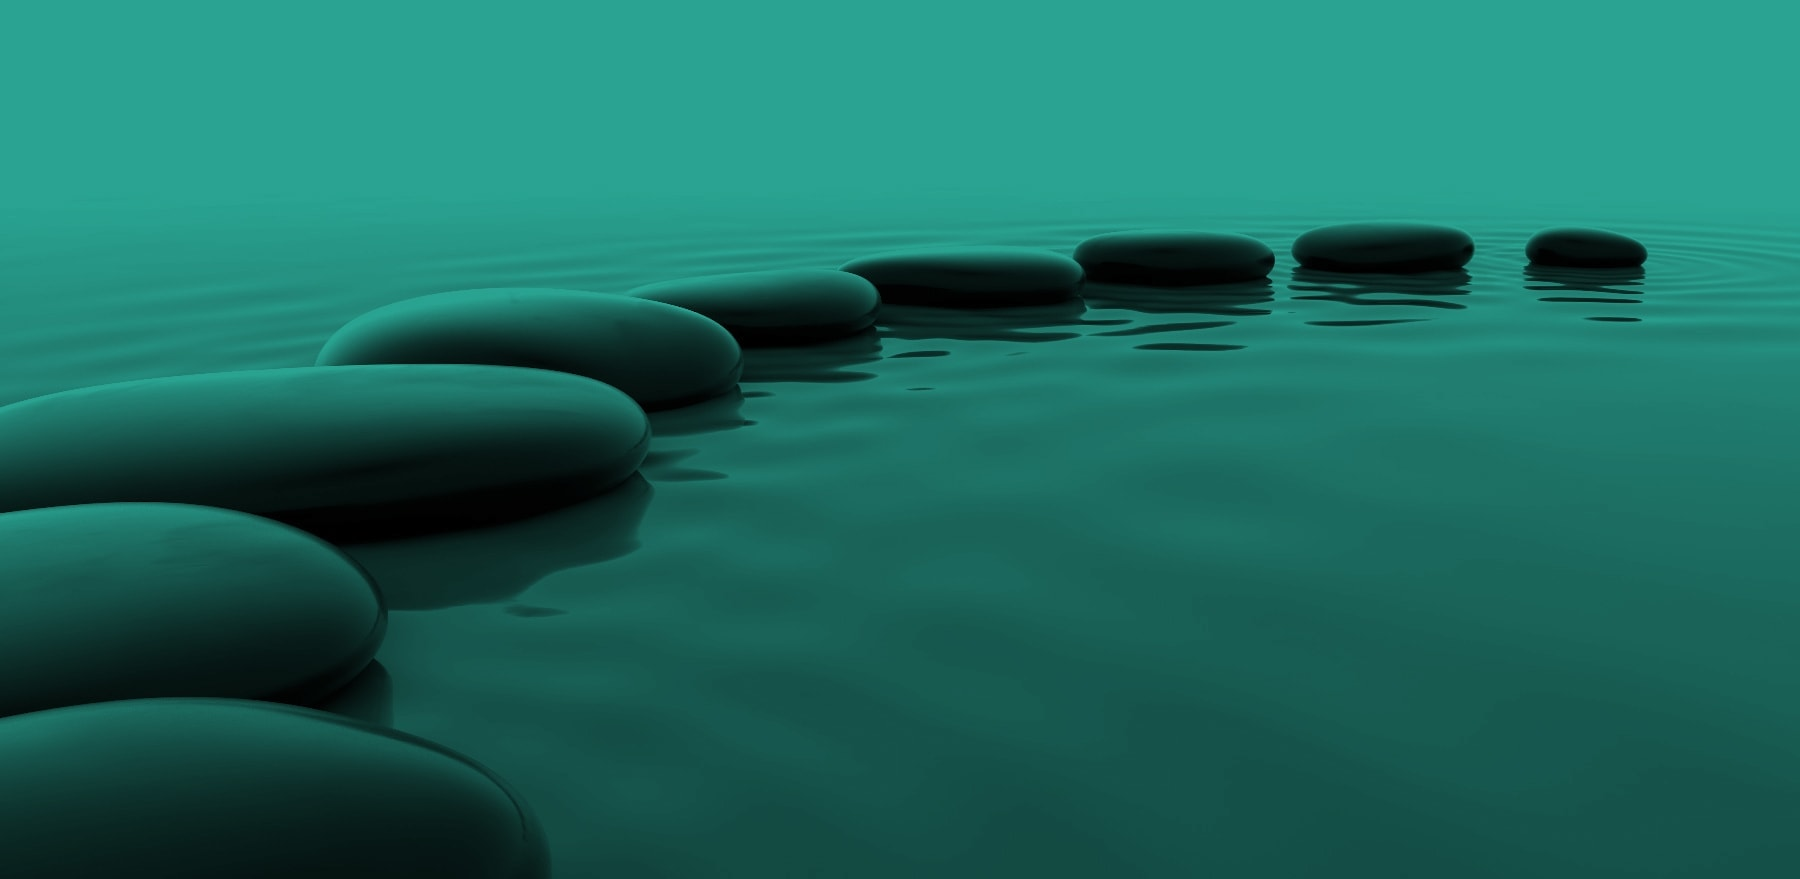 stones on water representing the path to wellbeing with sophrology